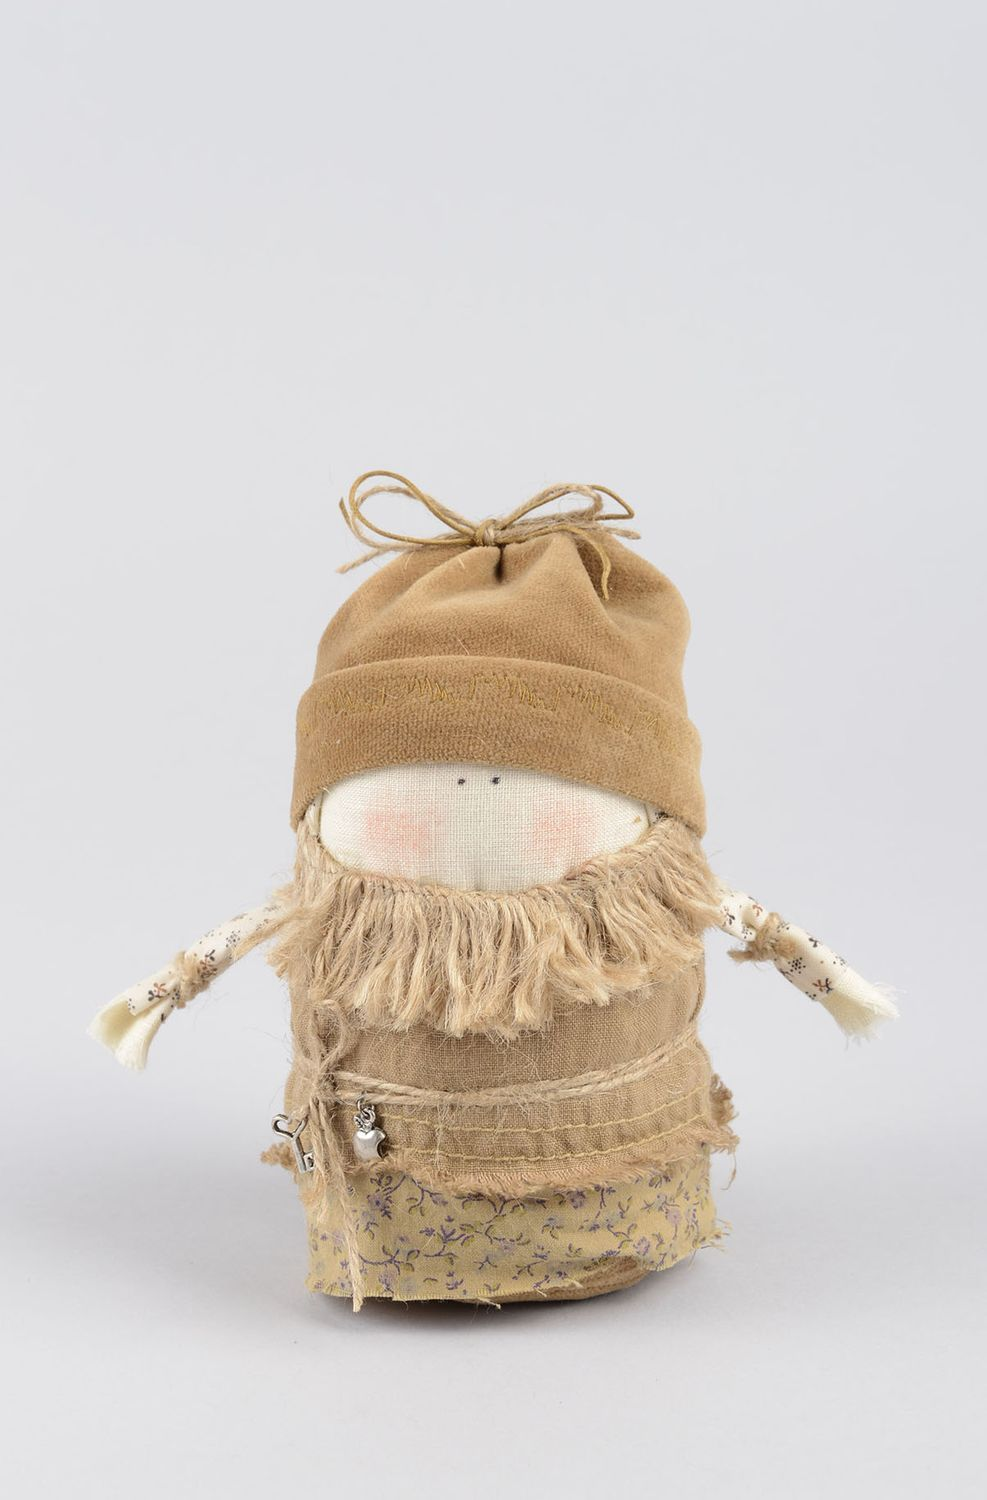 Handmade decorative doll primitive doll housewarming gifts for decorative use photo 1